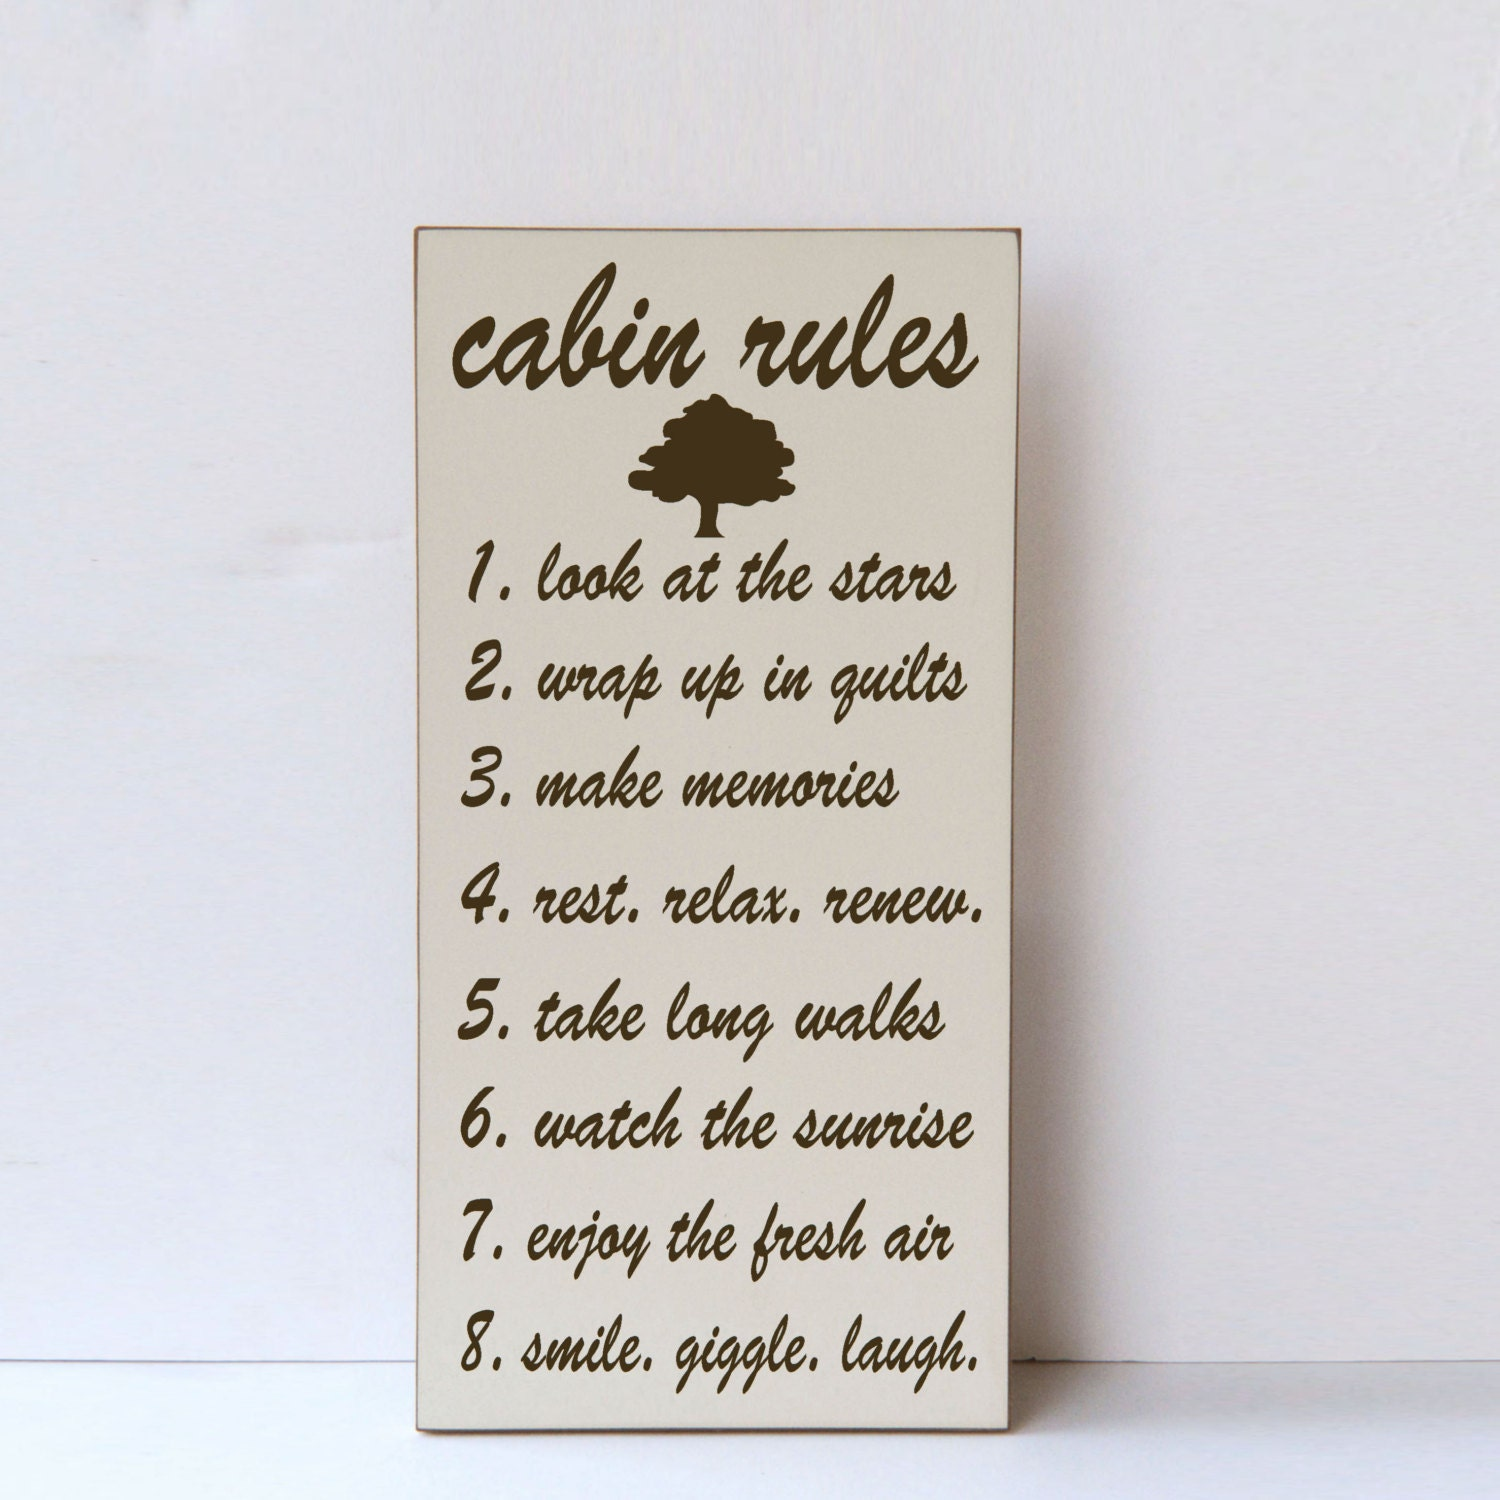 cabin rules wood sign cabin decor rules of the cabin cabin decor shophomexpressions